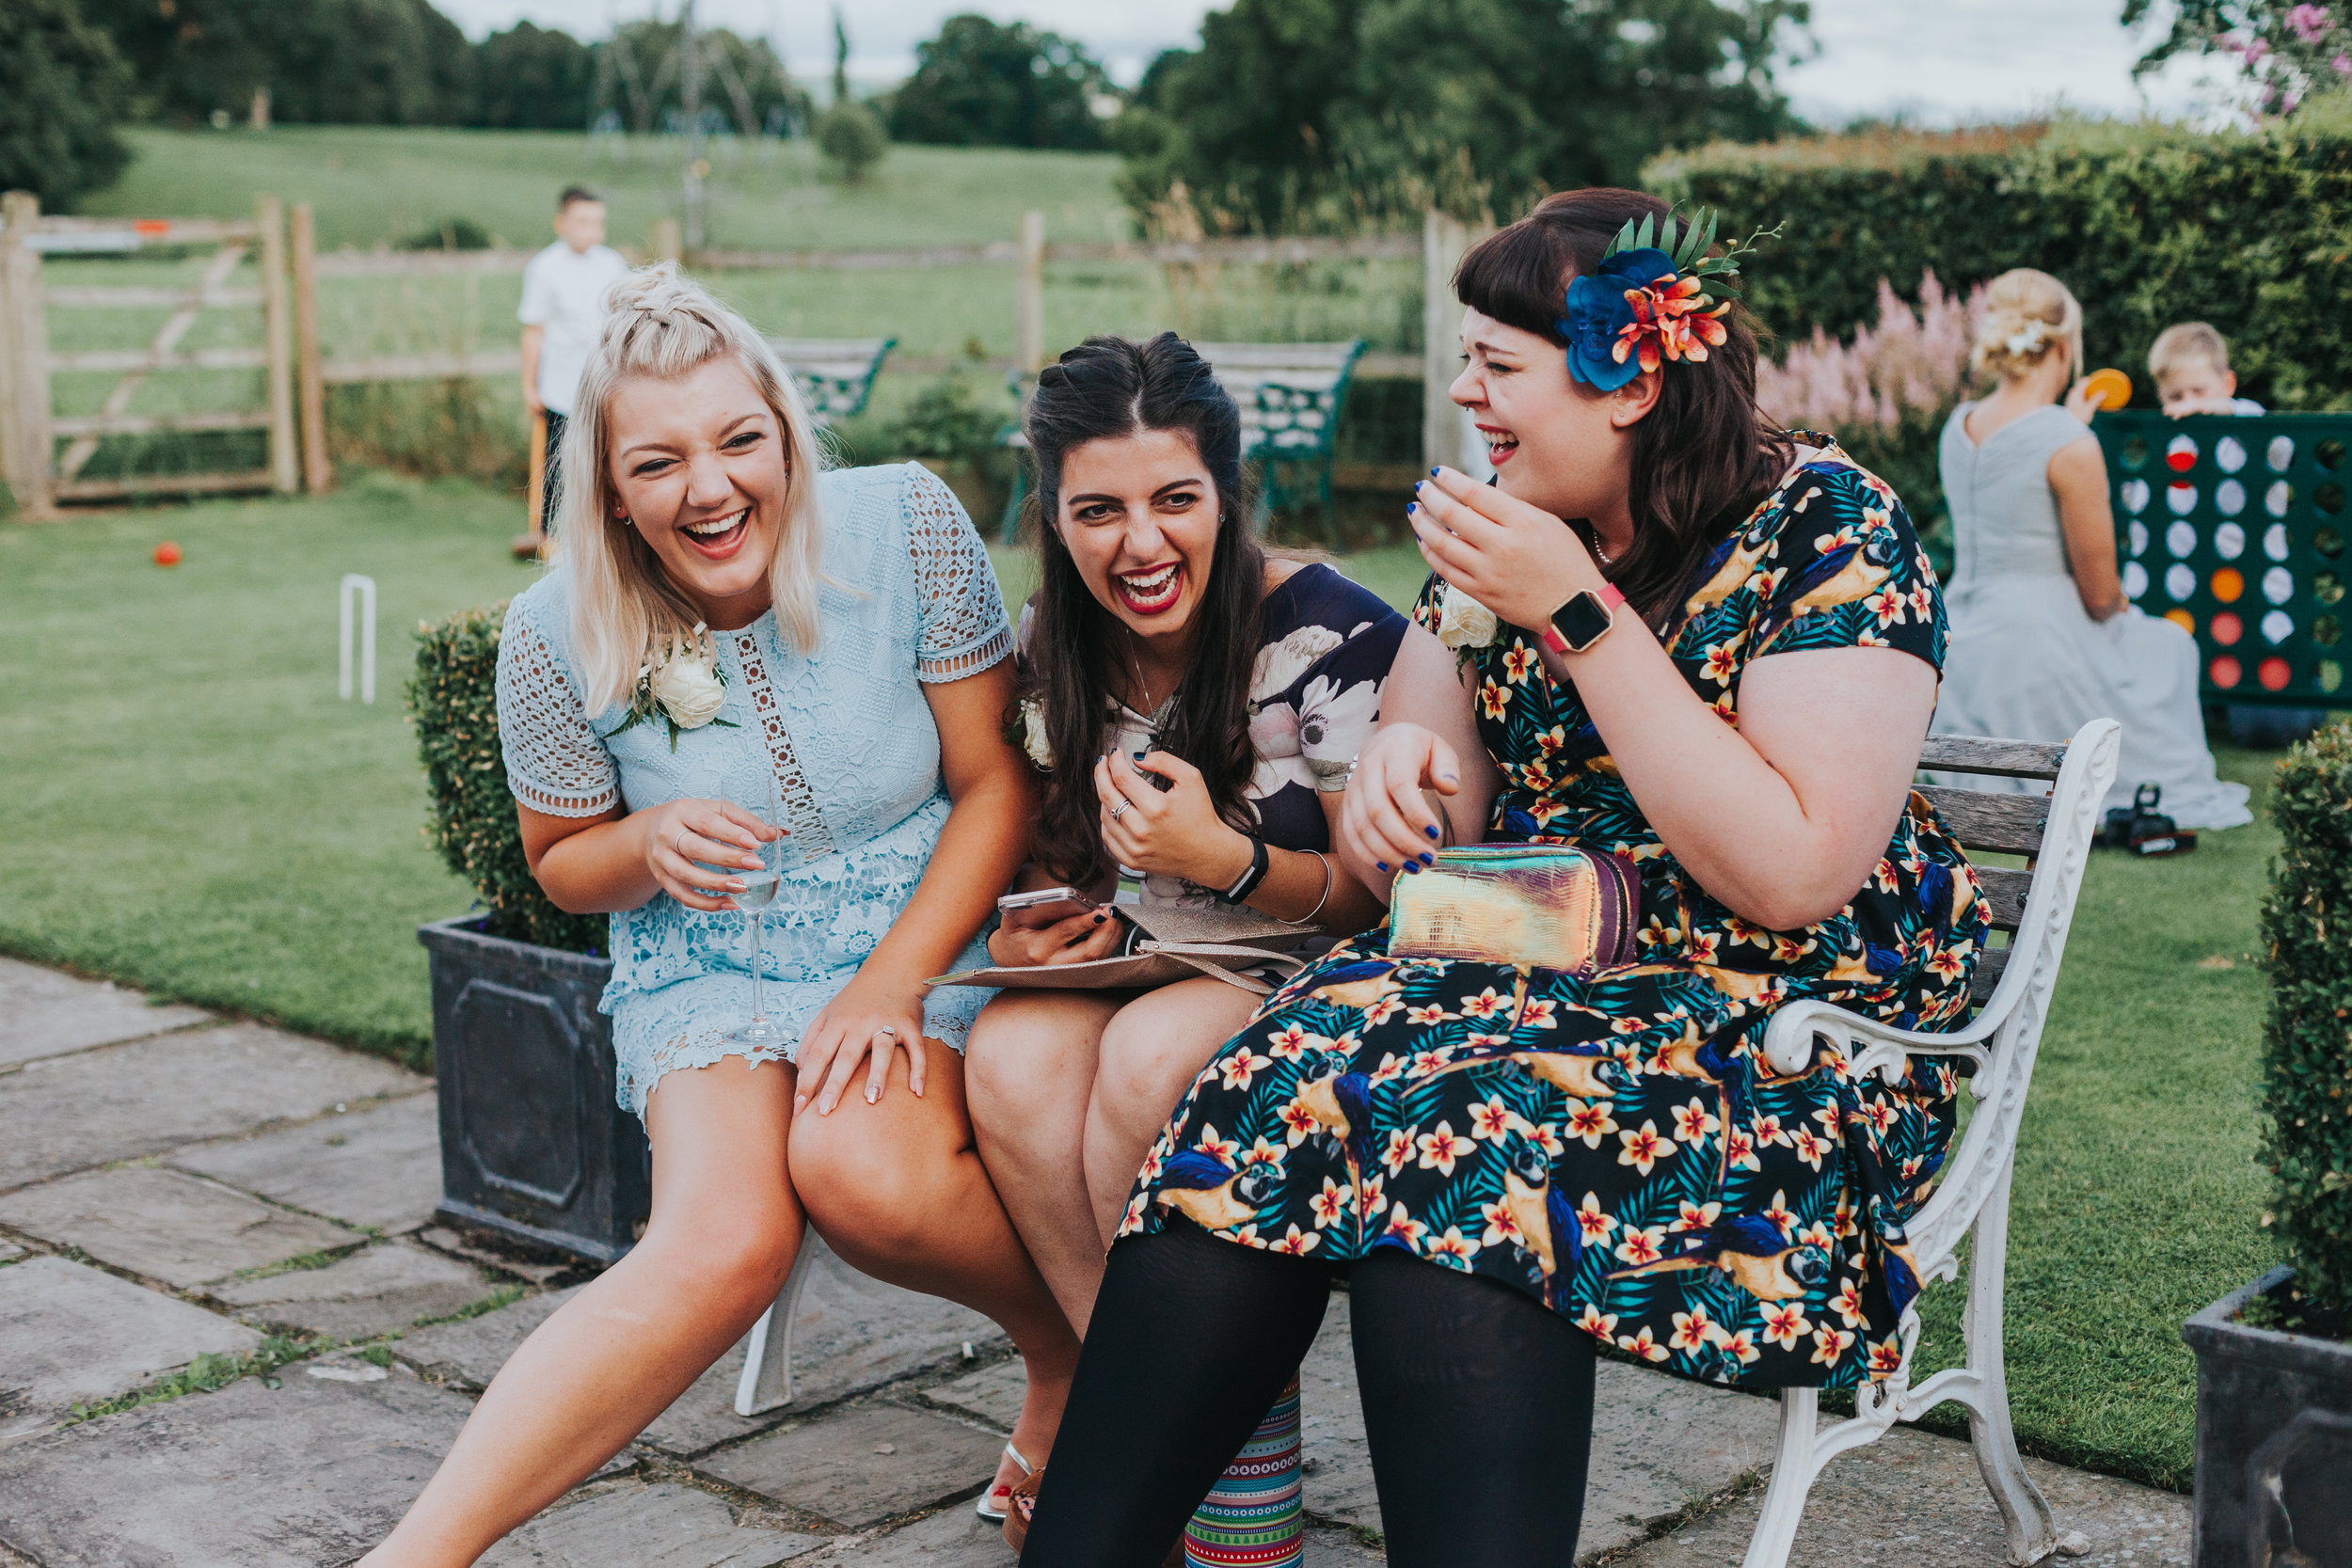 Candid shot of 3 female wedding guests dressed in brightly coloured clothes sit on a bench and laugh together at a wedding in Manchester, while children play lawn games behind them.